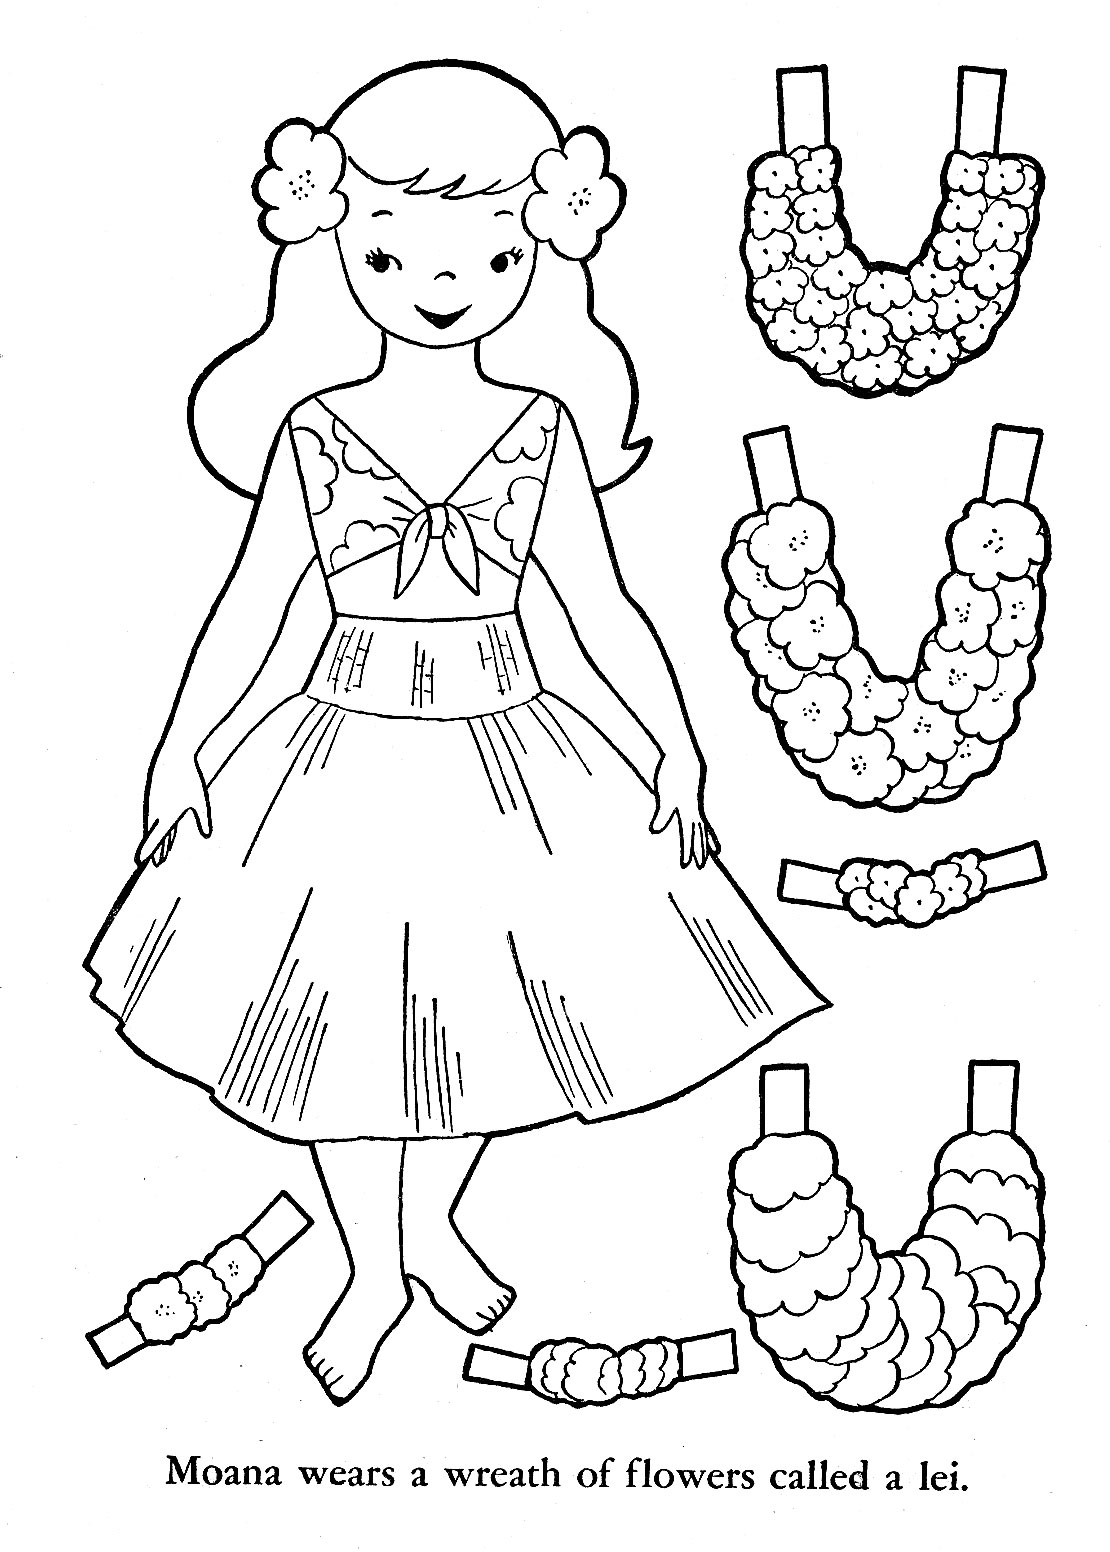 hawaiian coloring pages for children - photo#13